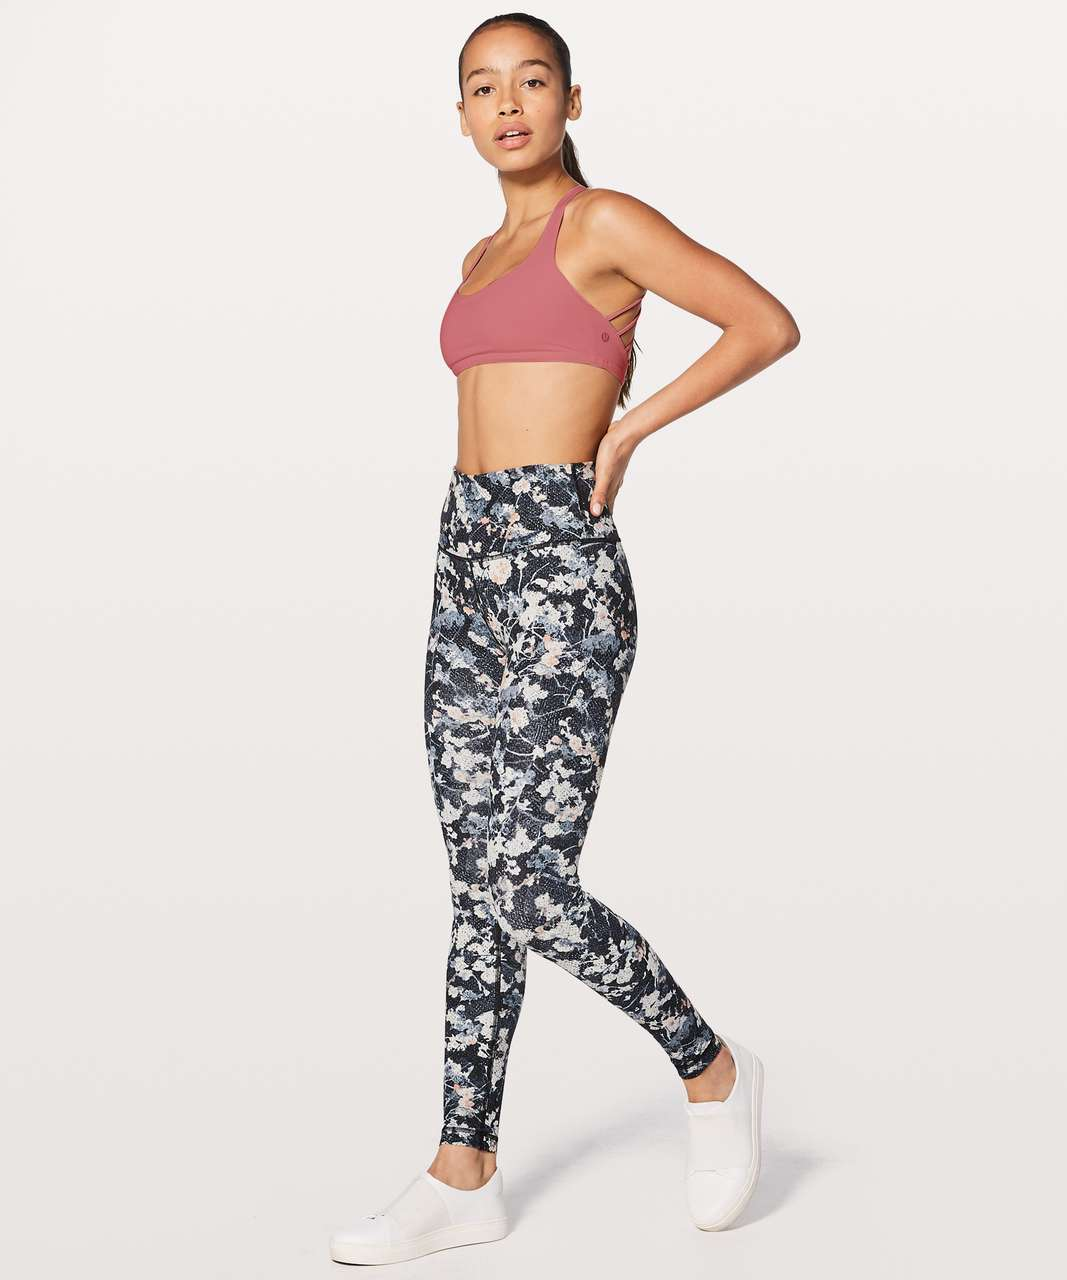 Lululemon Free To Be Bra (Wild) - Quicksand